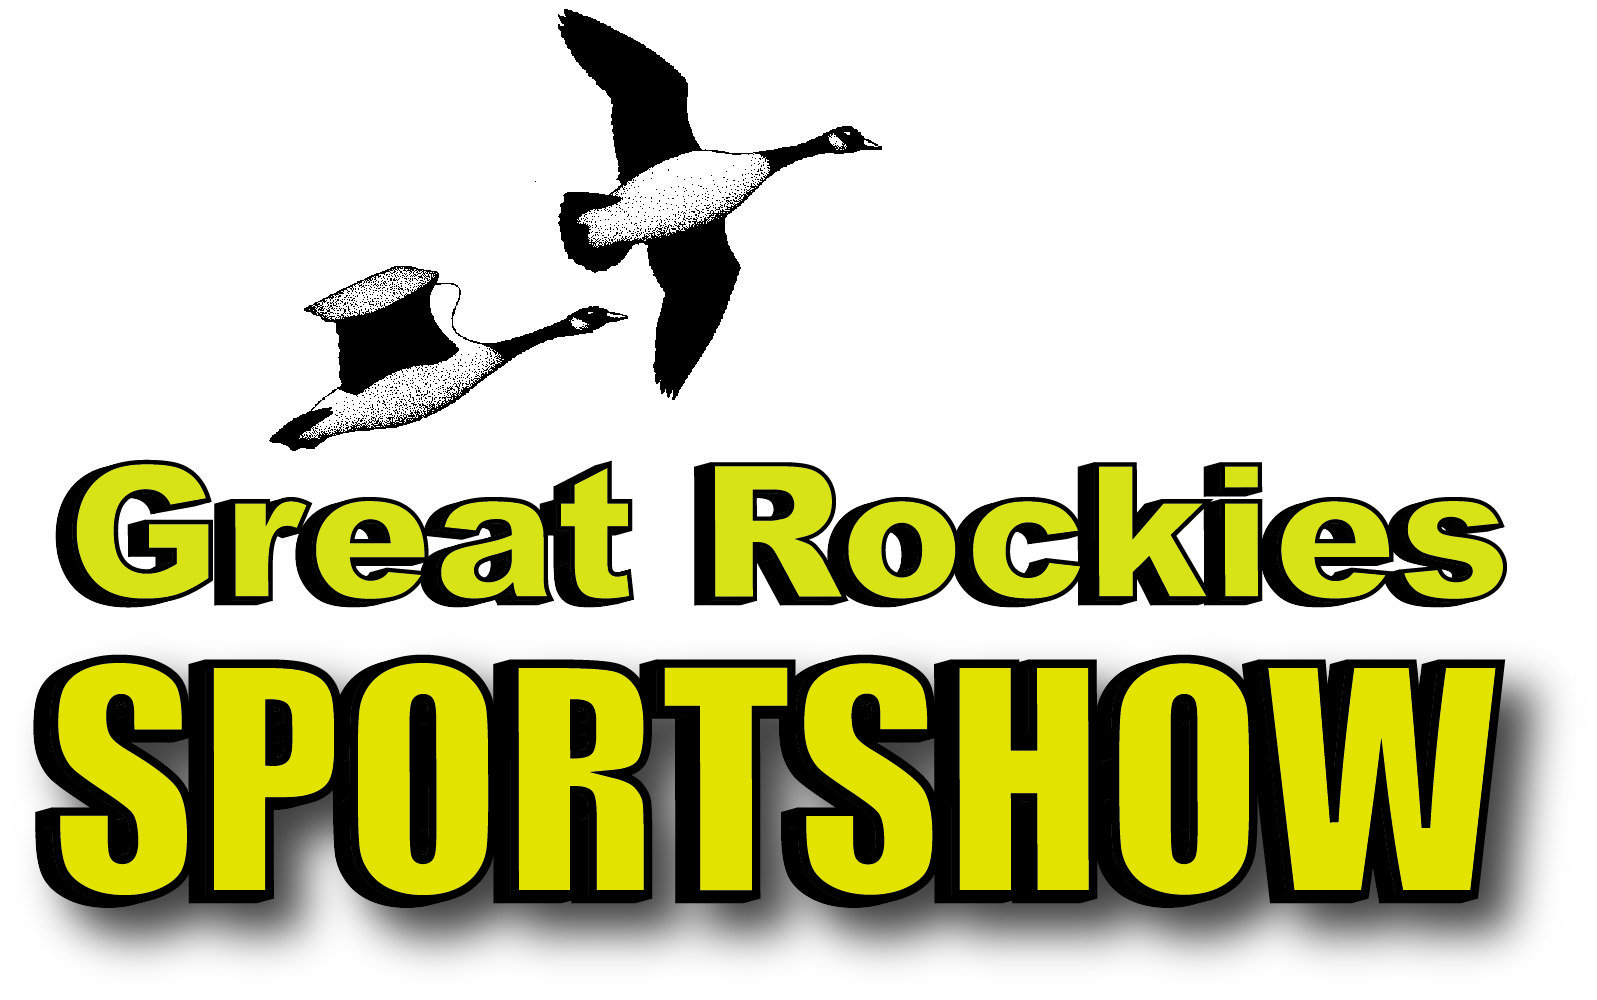 Montana's Great Rockies Sportshow | Billings, MT